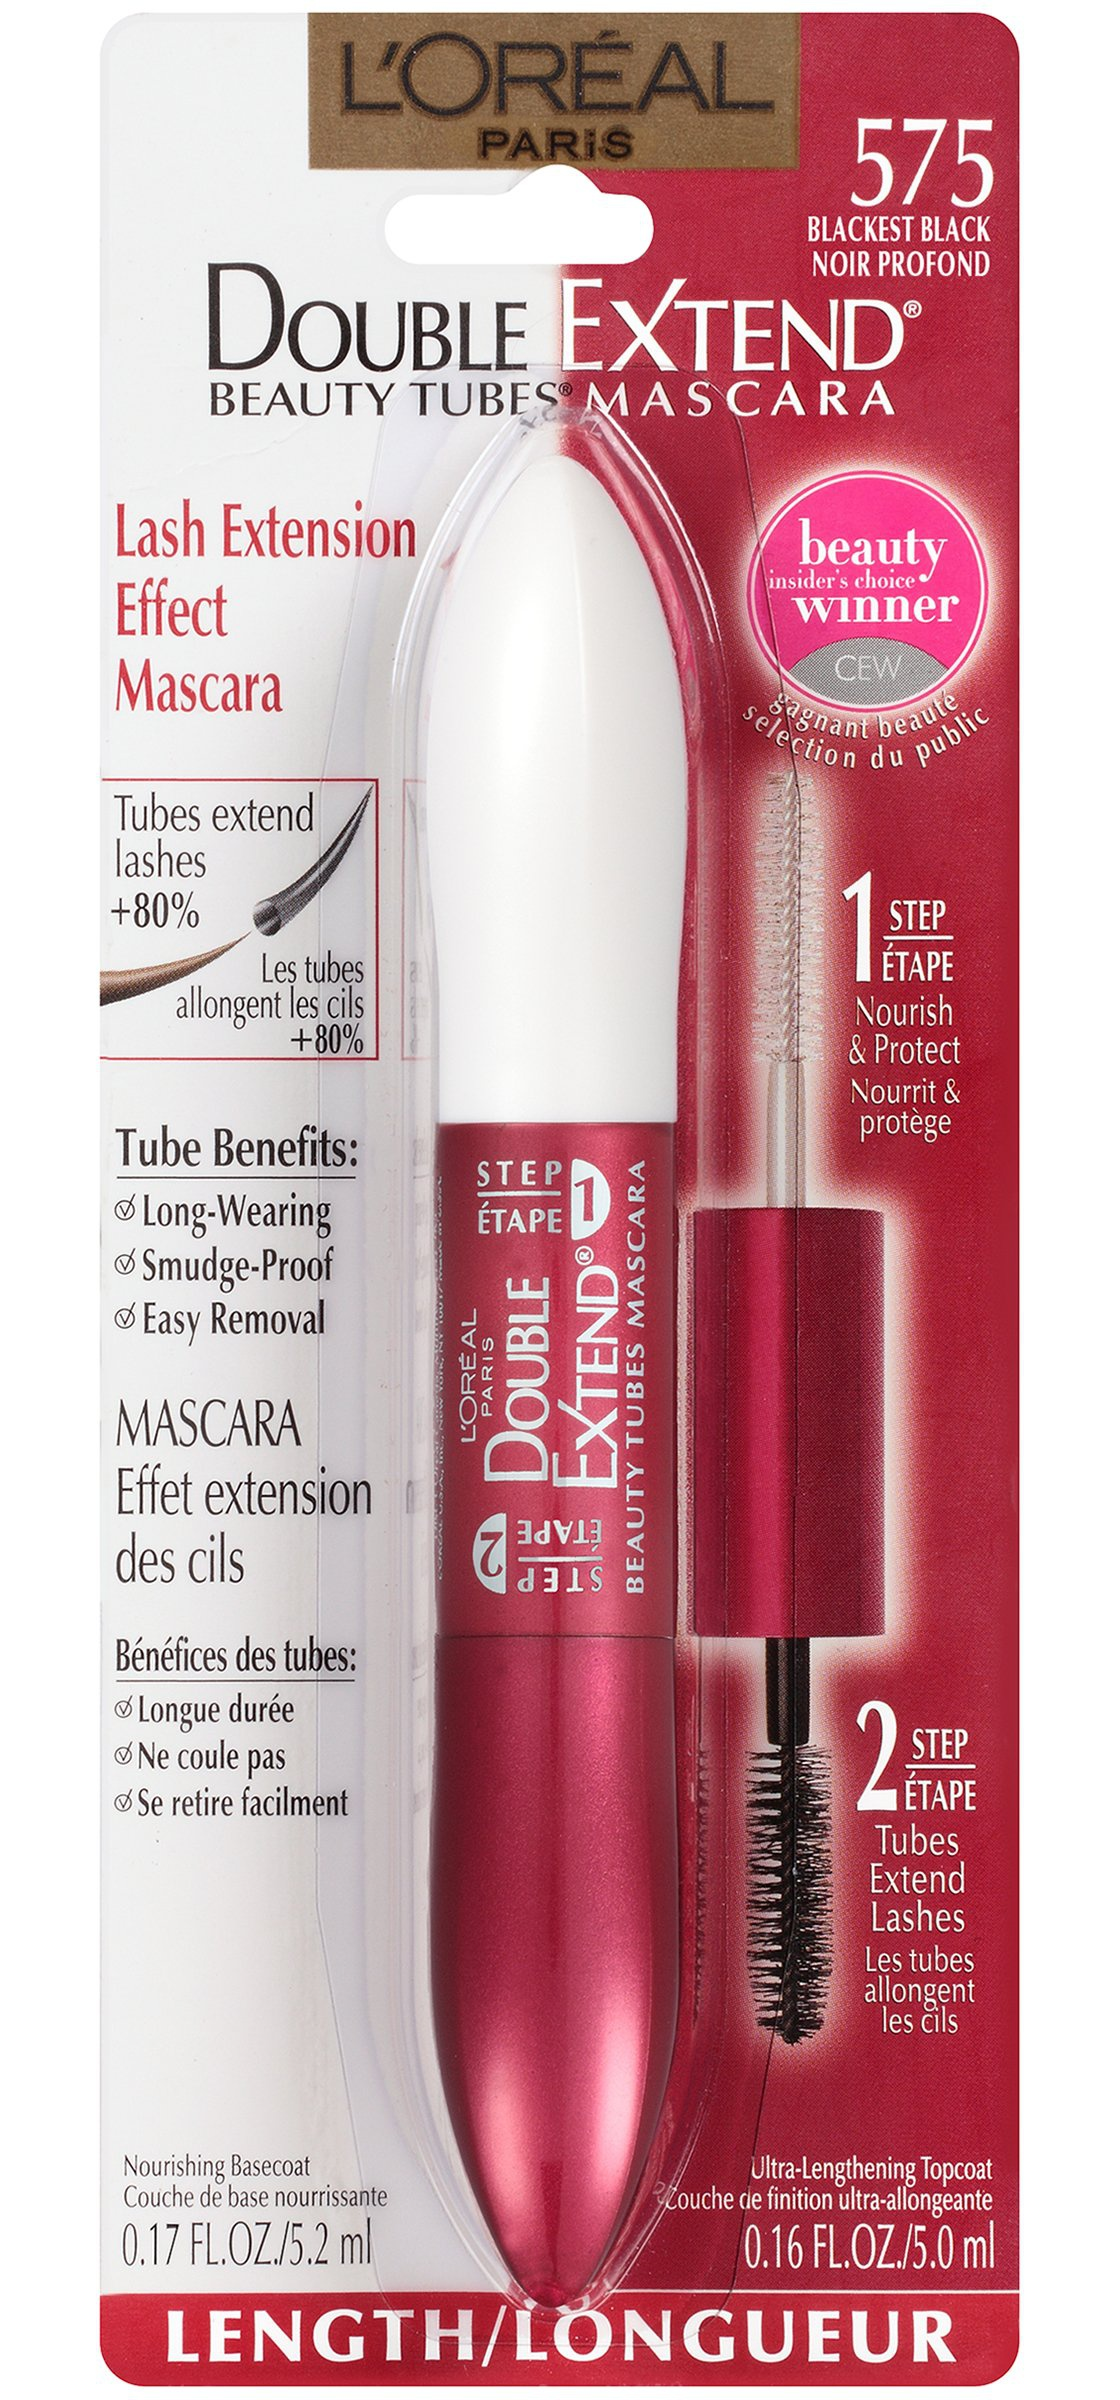 L'Oreal Double Extend Beauty Tubes